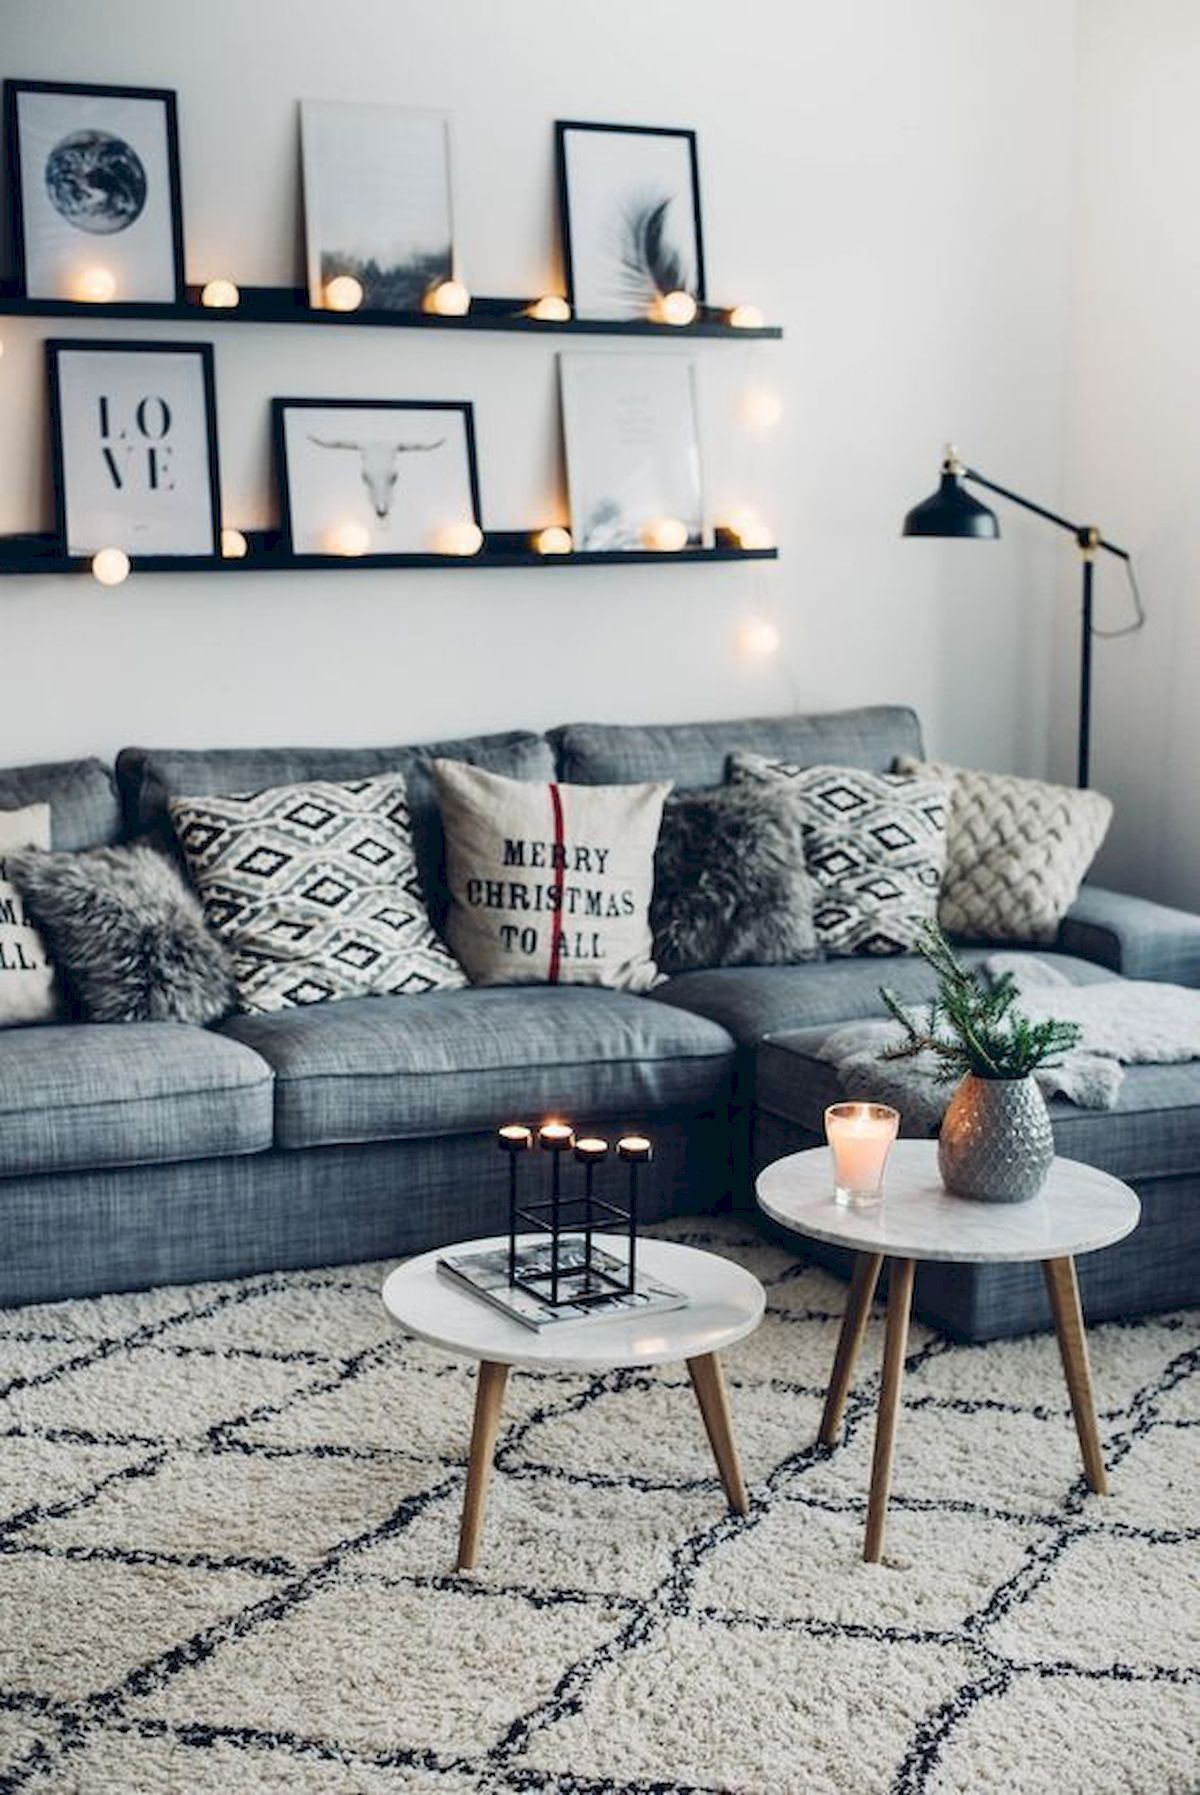 A Modern Apartment In Kiev Featuring Scandinavian Style And Pastels Living Room Decor Apartment Cosy Living Room Cozy Living Room Apartment